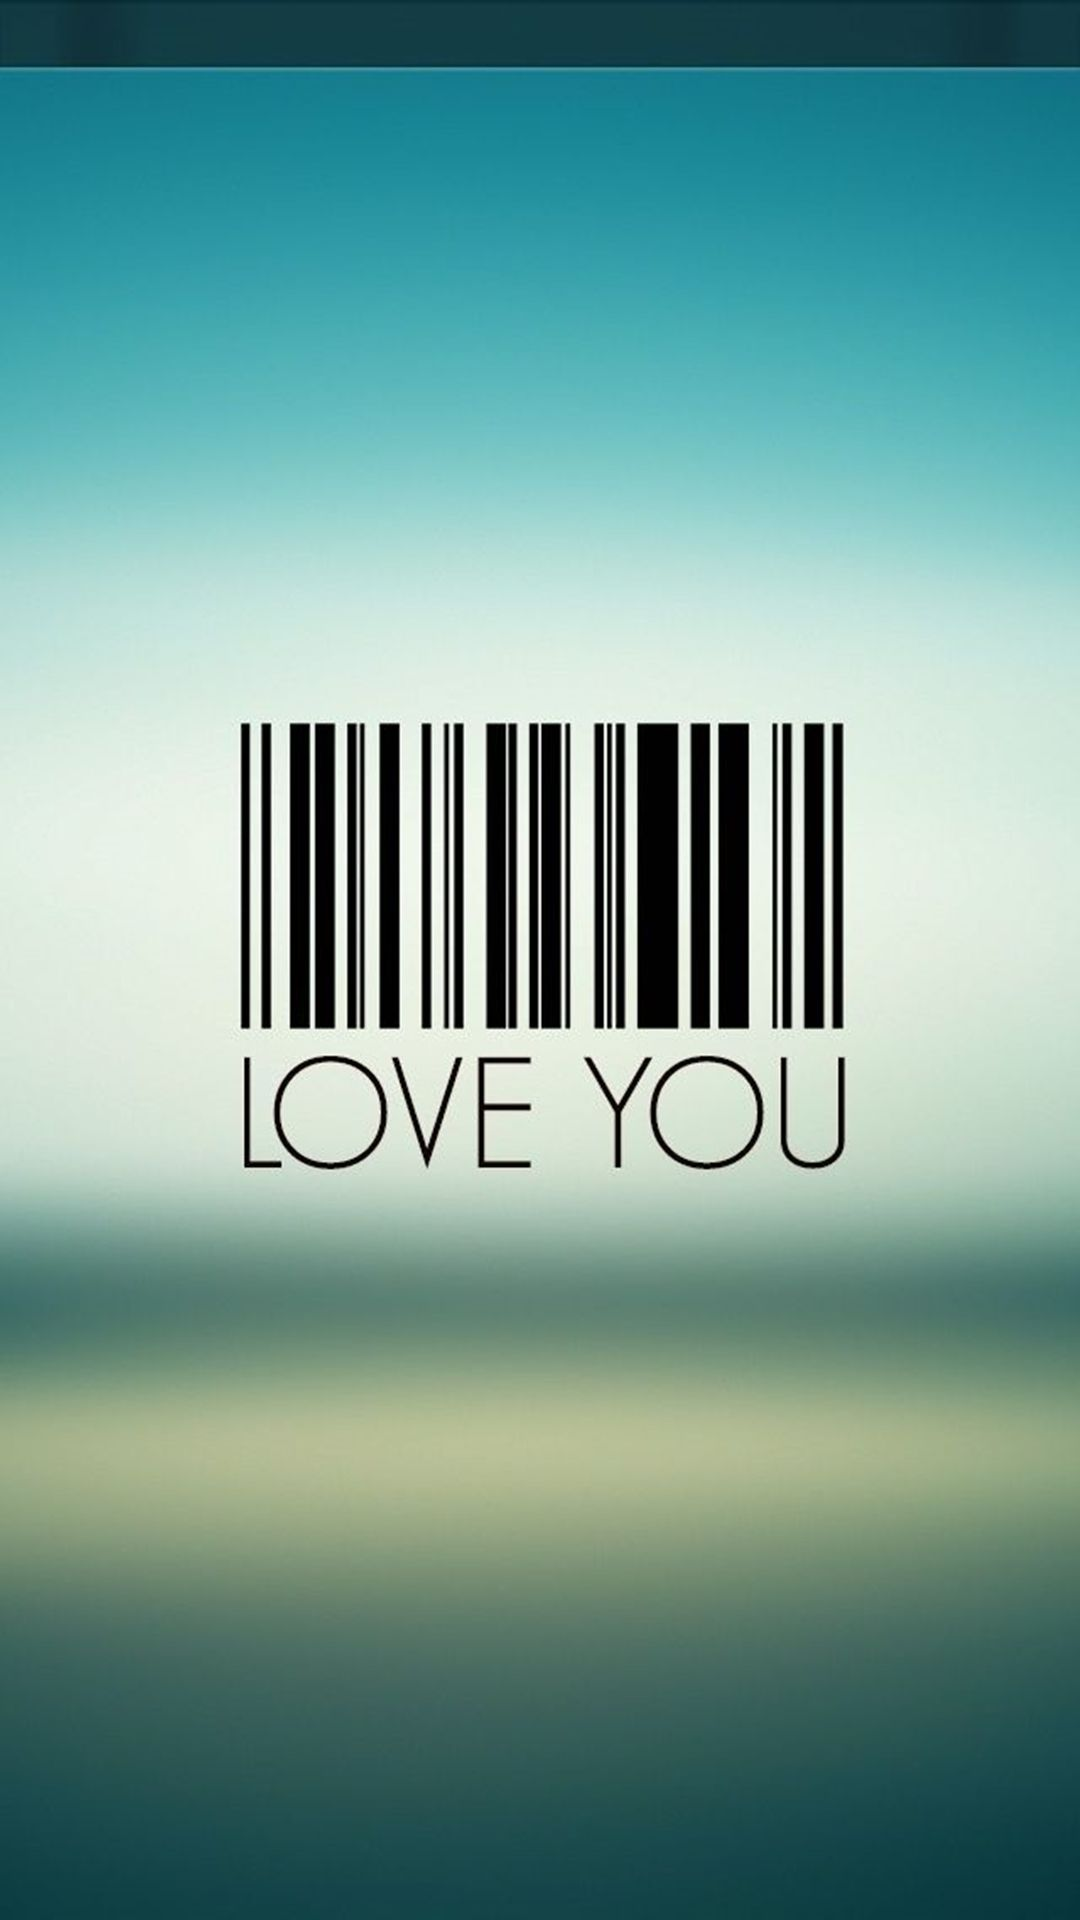 Wallpaper iphone love quotes - Customize Your Iphone 6 Plus With This High Definition Love You Wallpaper From Hd Phone Wallpapers